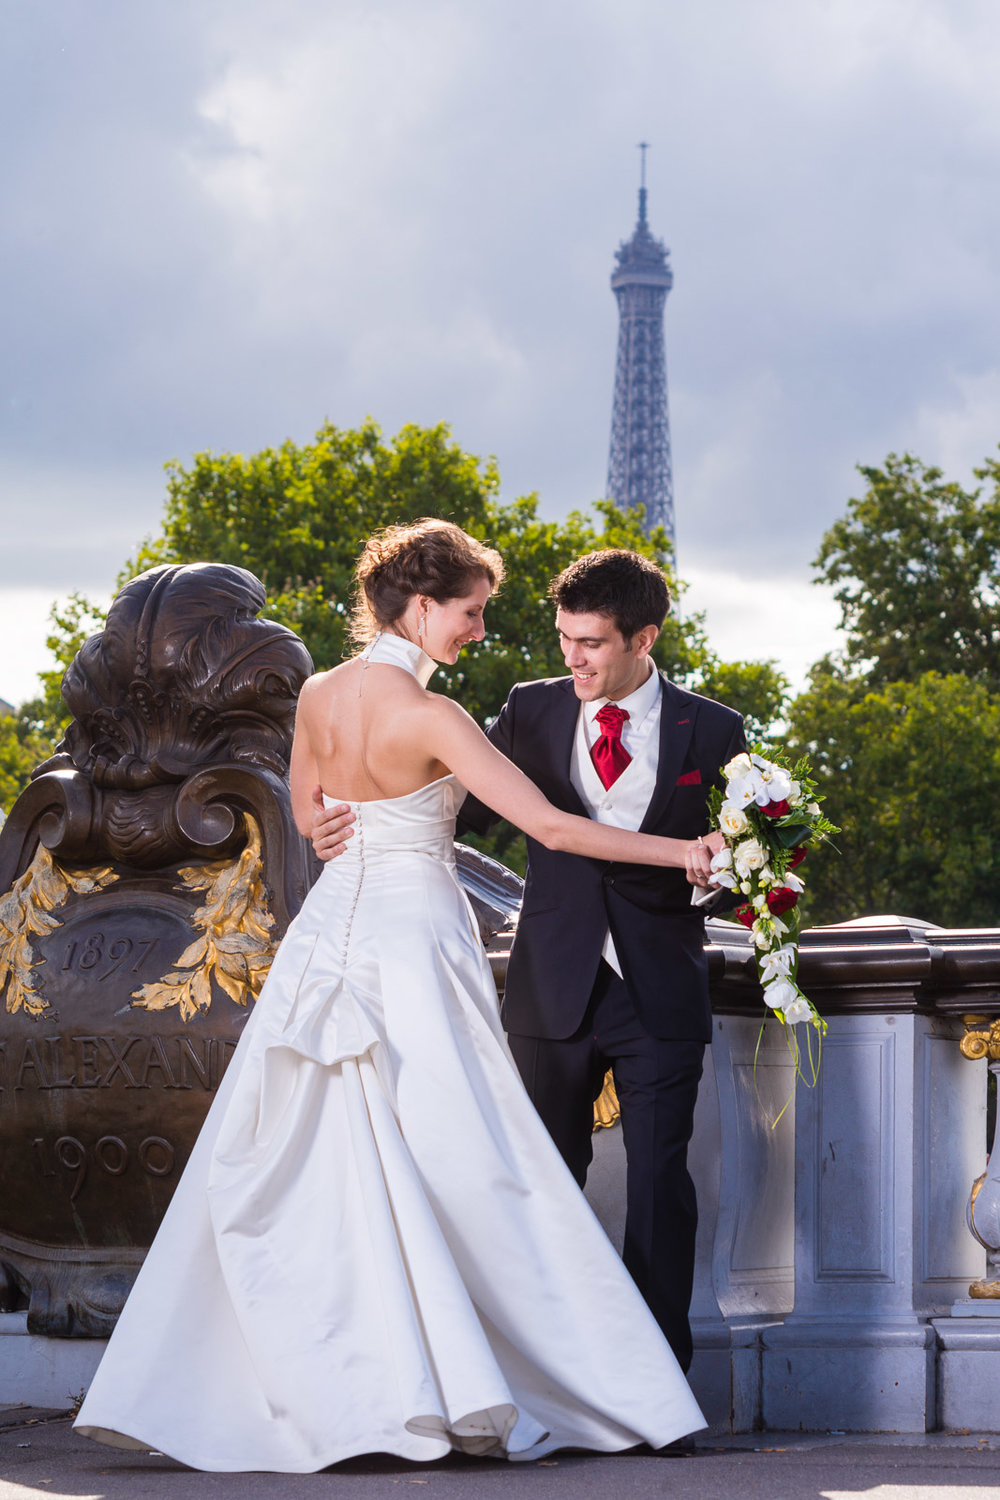 20130831-155505-Weddings & Portraits-untitled-Premium-Paris.jpg